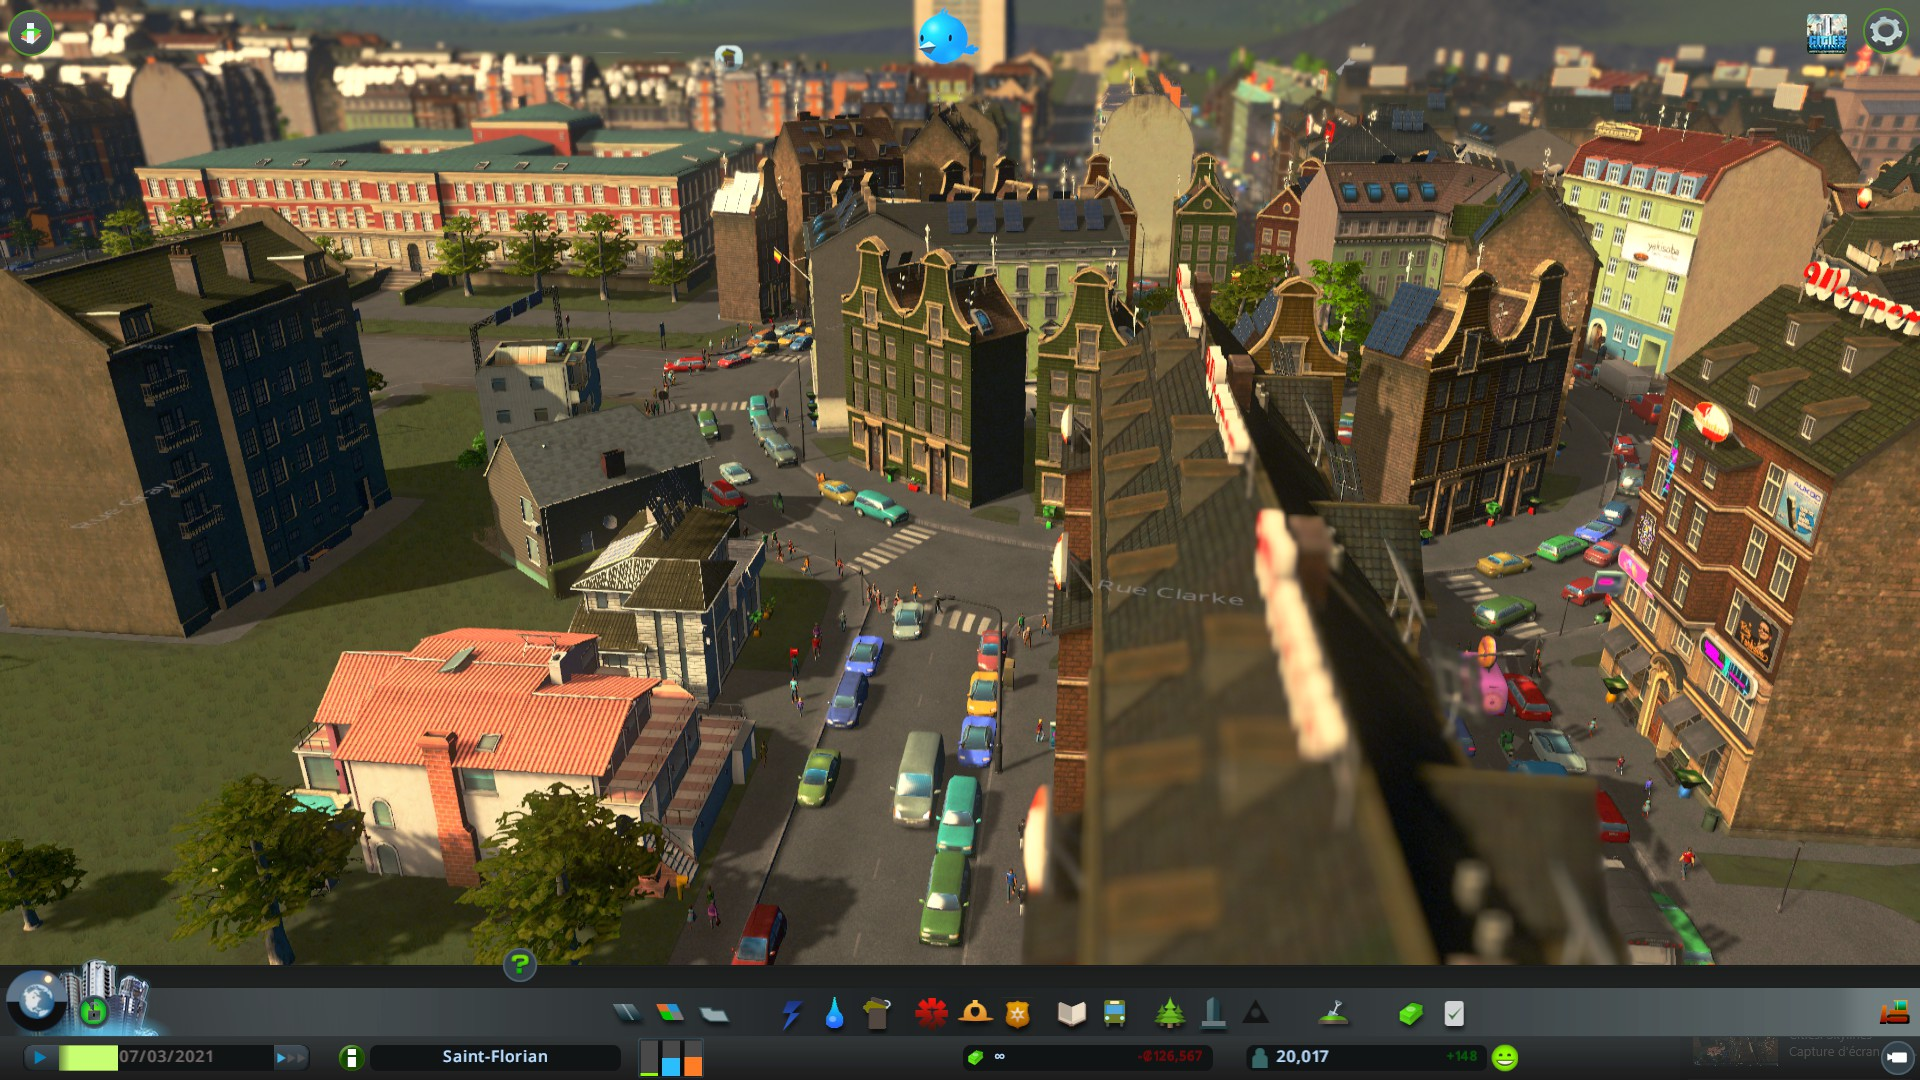 Cities Skylines Nvidia Surround Only Center Monitor Work